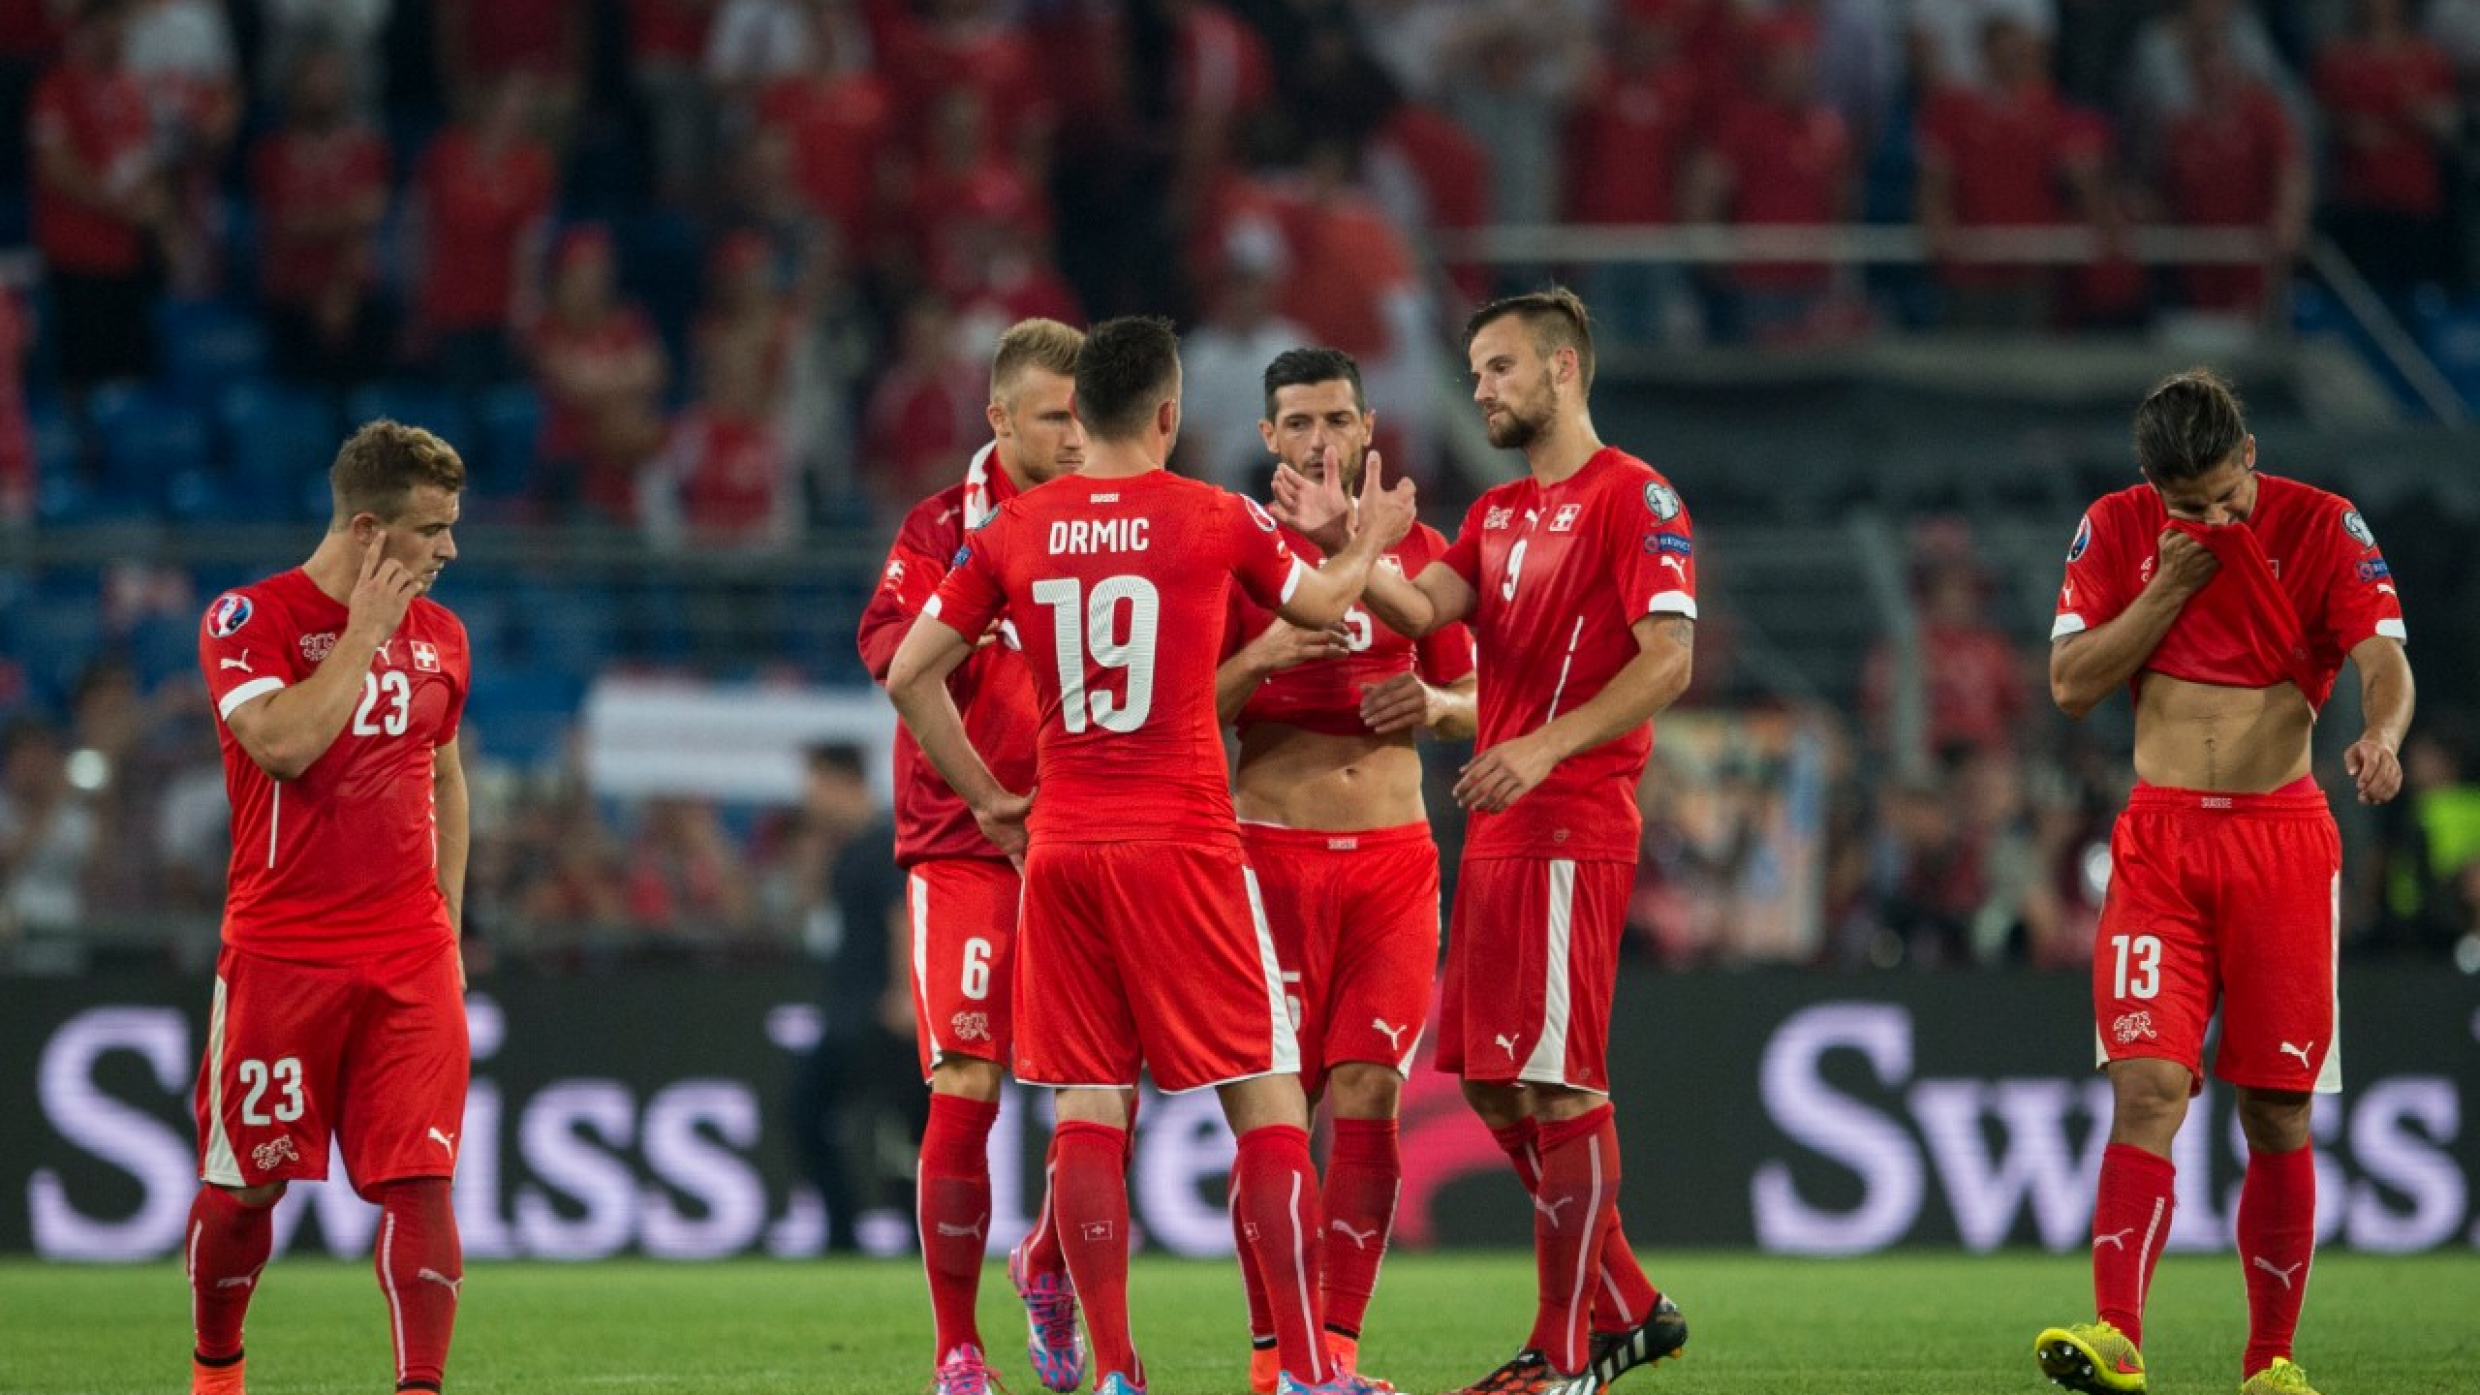 Swiss forward Xherdan Shaqiri, right, and his team after the UEFA EURO 2016 qualifying match Switzerland against England at the St. Jakob-Park stadium in Basel, Switzerland, Monday, September 8, 2014. (KEYSTONE/Ennio Leanza)